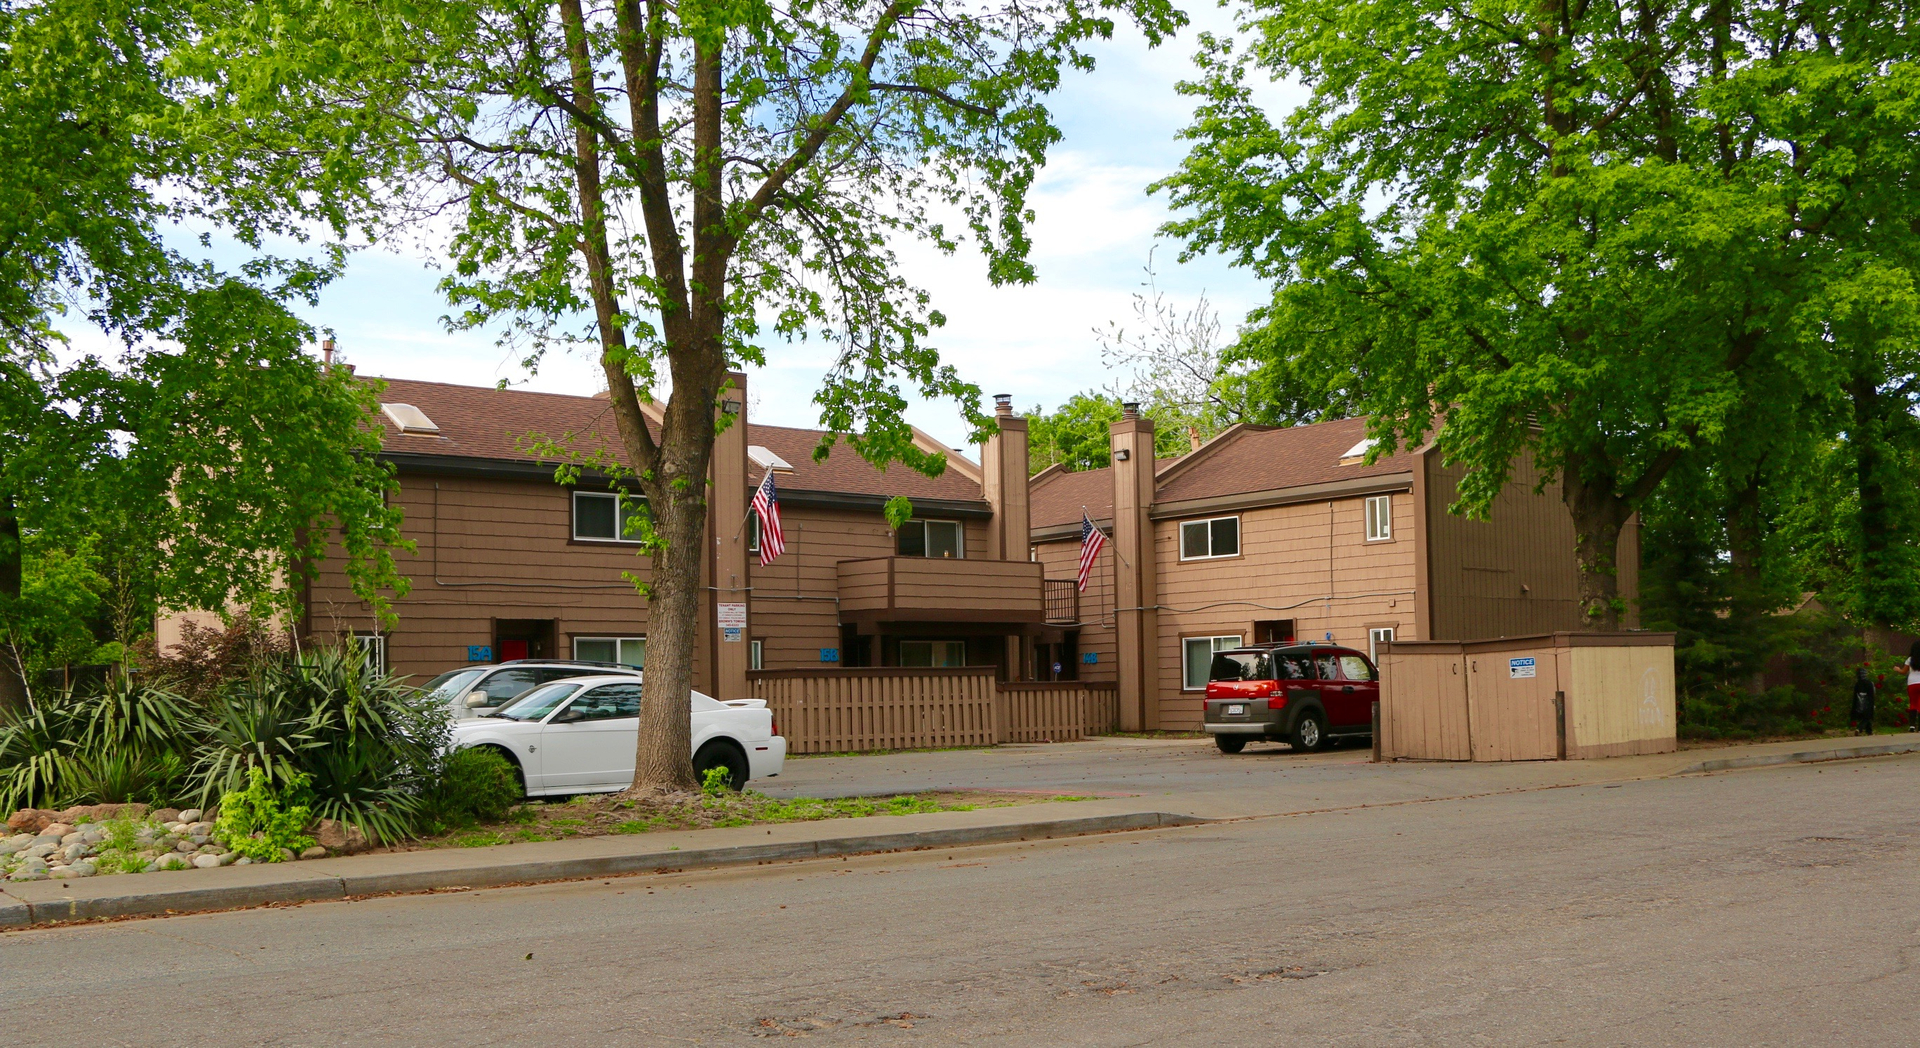 Kongs Rental Properties Apartment Rentals In Chico Apartments For